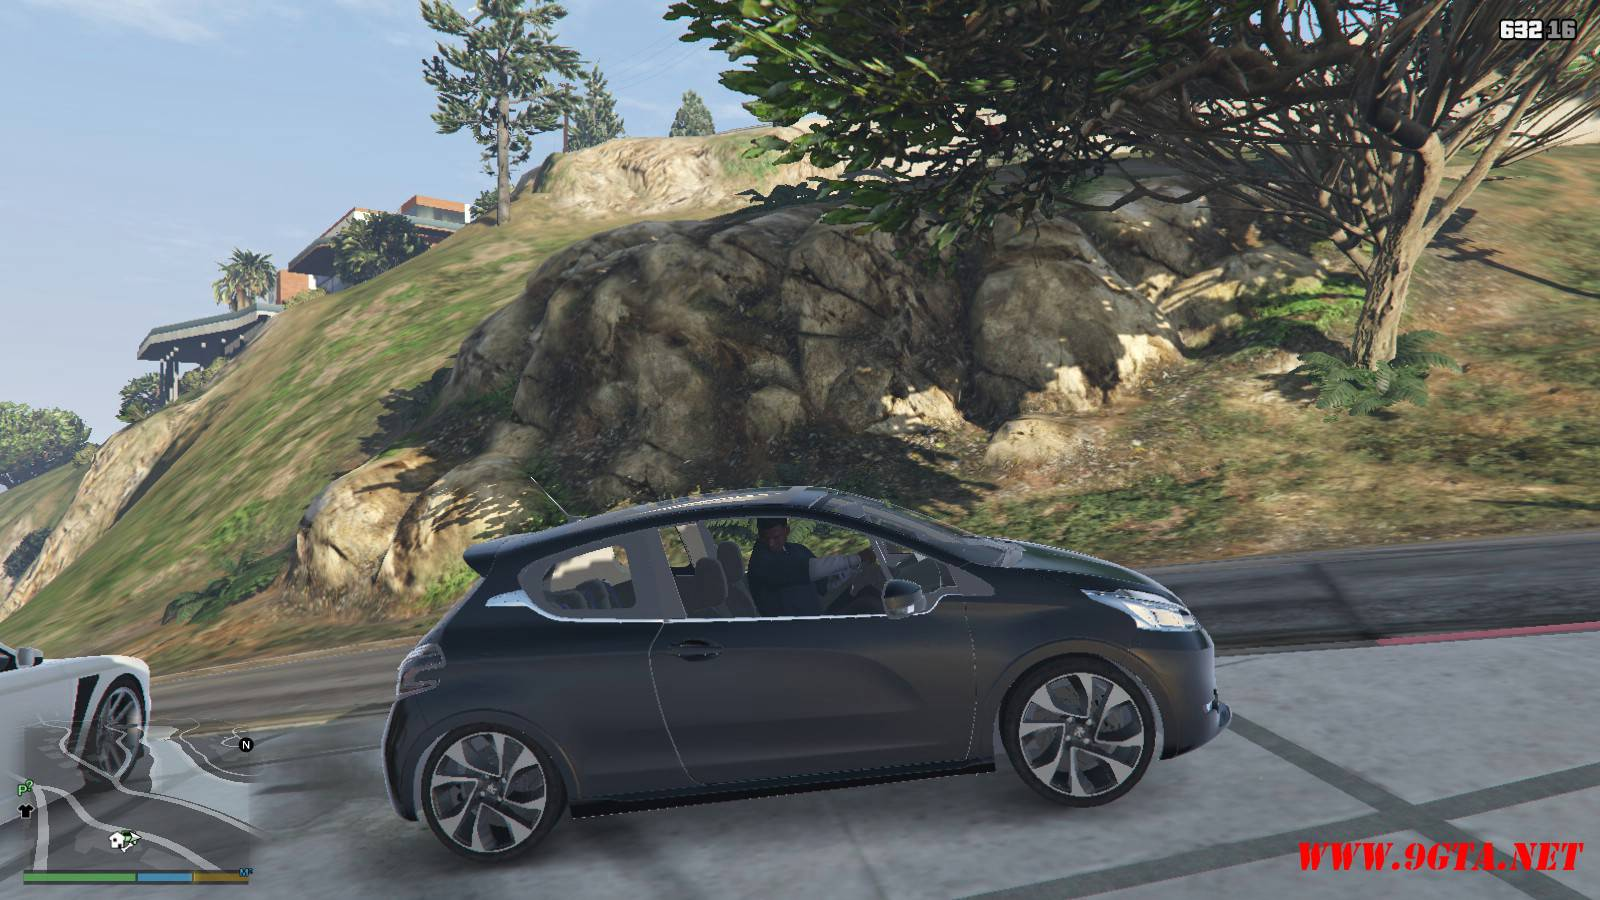 Peugeot 208 Mod For GTA5 (7)